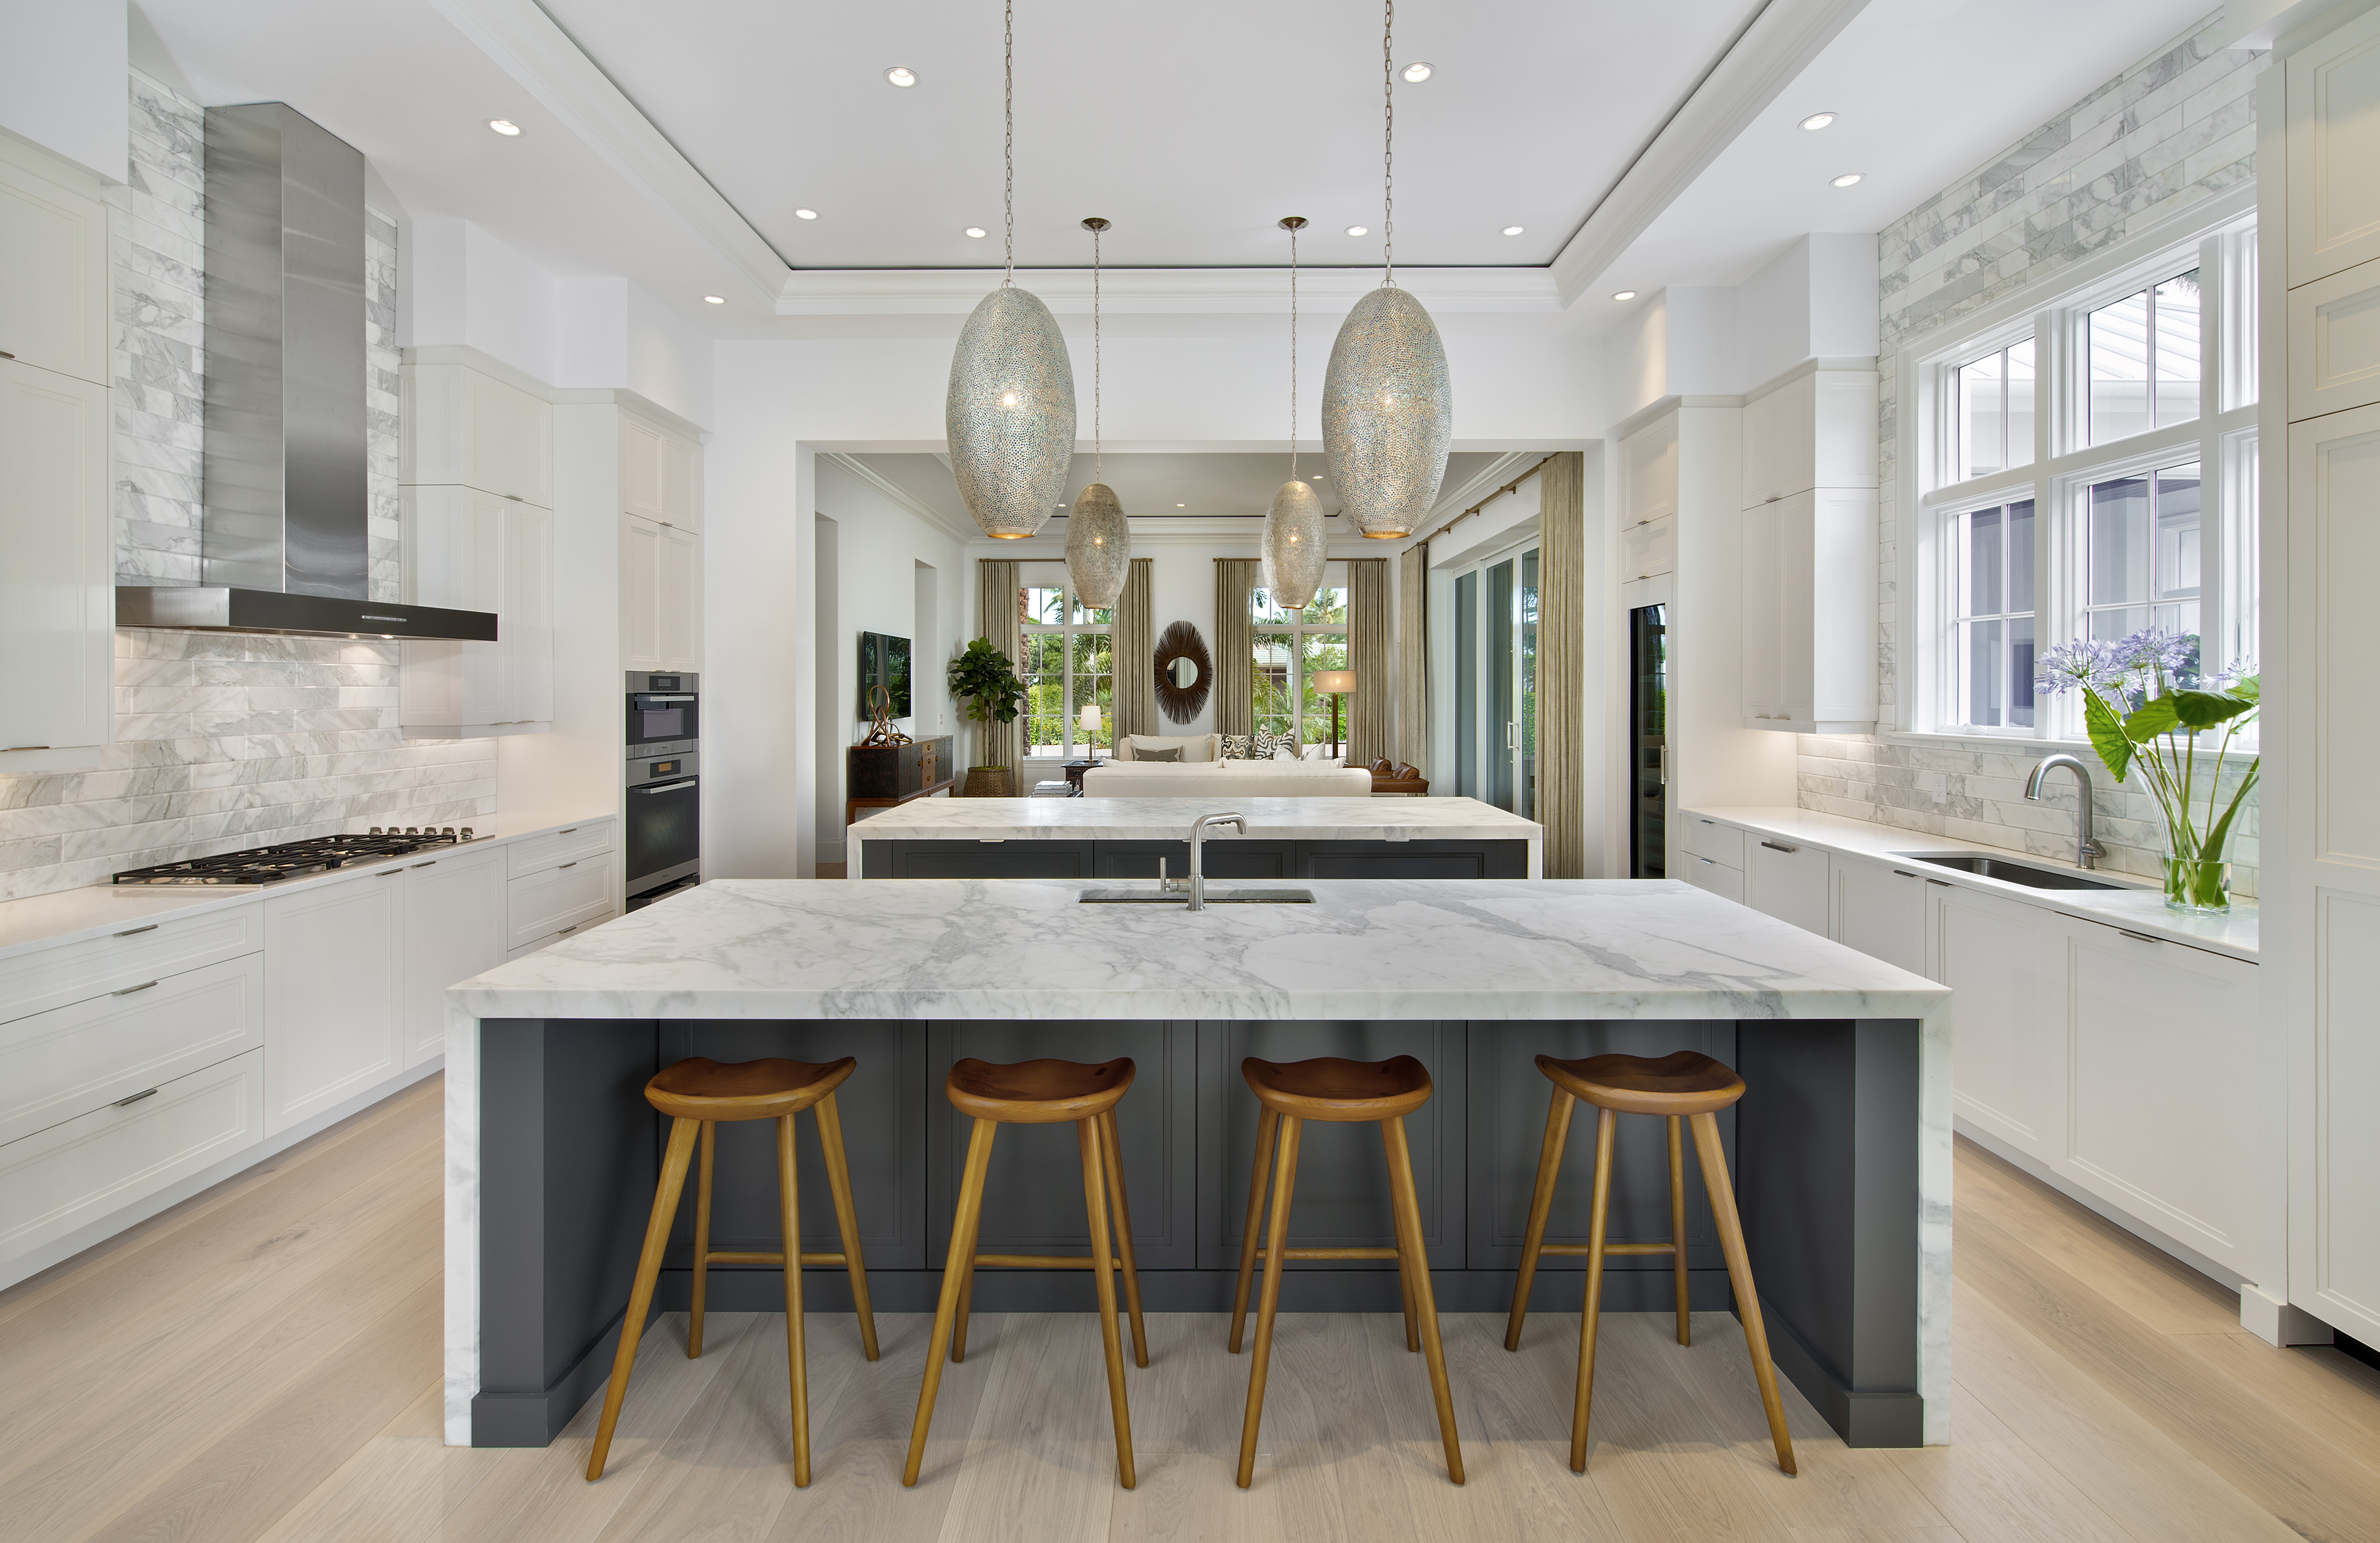 Jeffrey Fisher Home Luxury Interior Design Imagined Home Decor Custom Kitchen